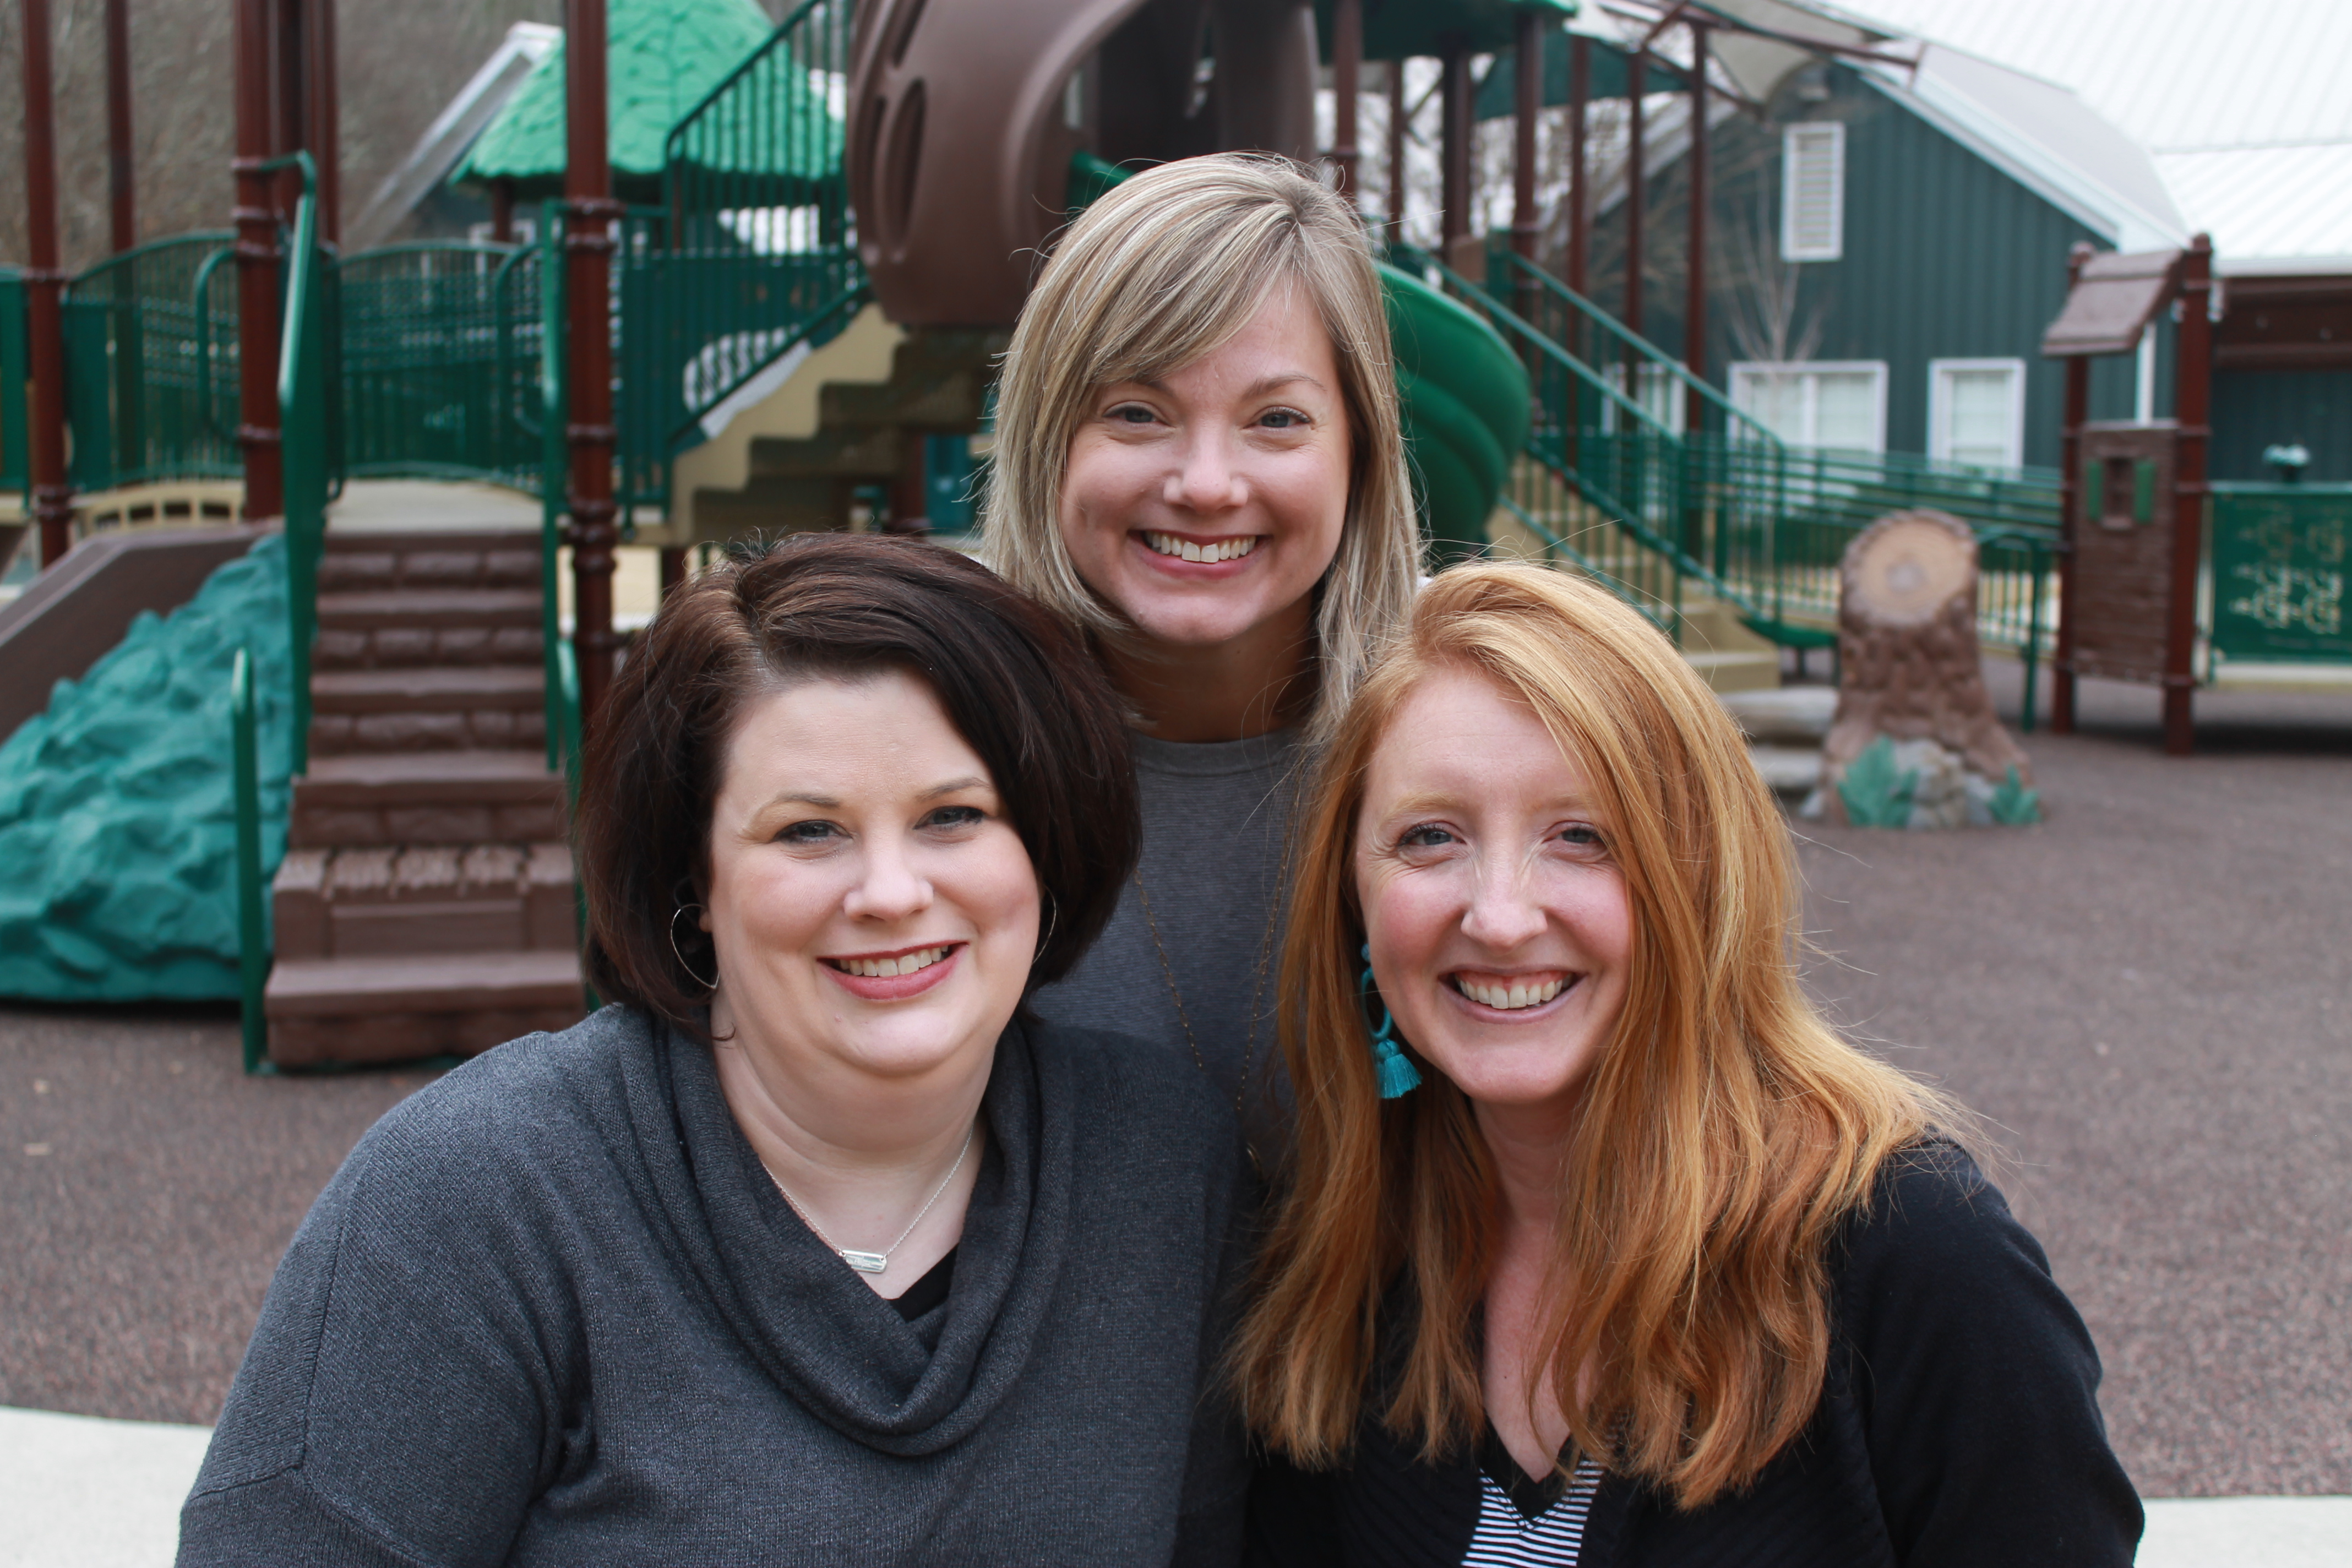 Lynn Roebuck, Meredith Hankins, and Melissa Pouncey outside at a playground